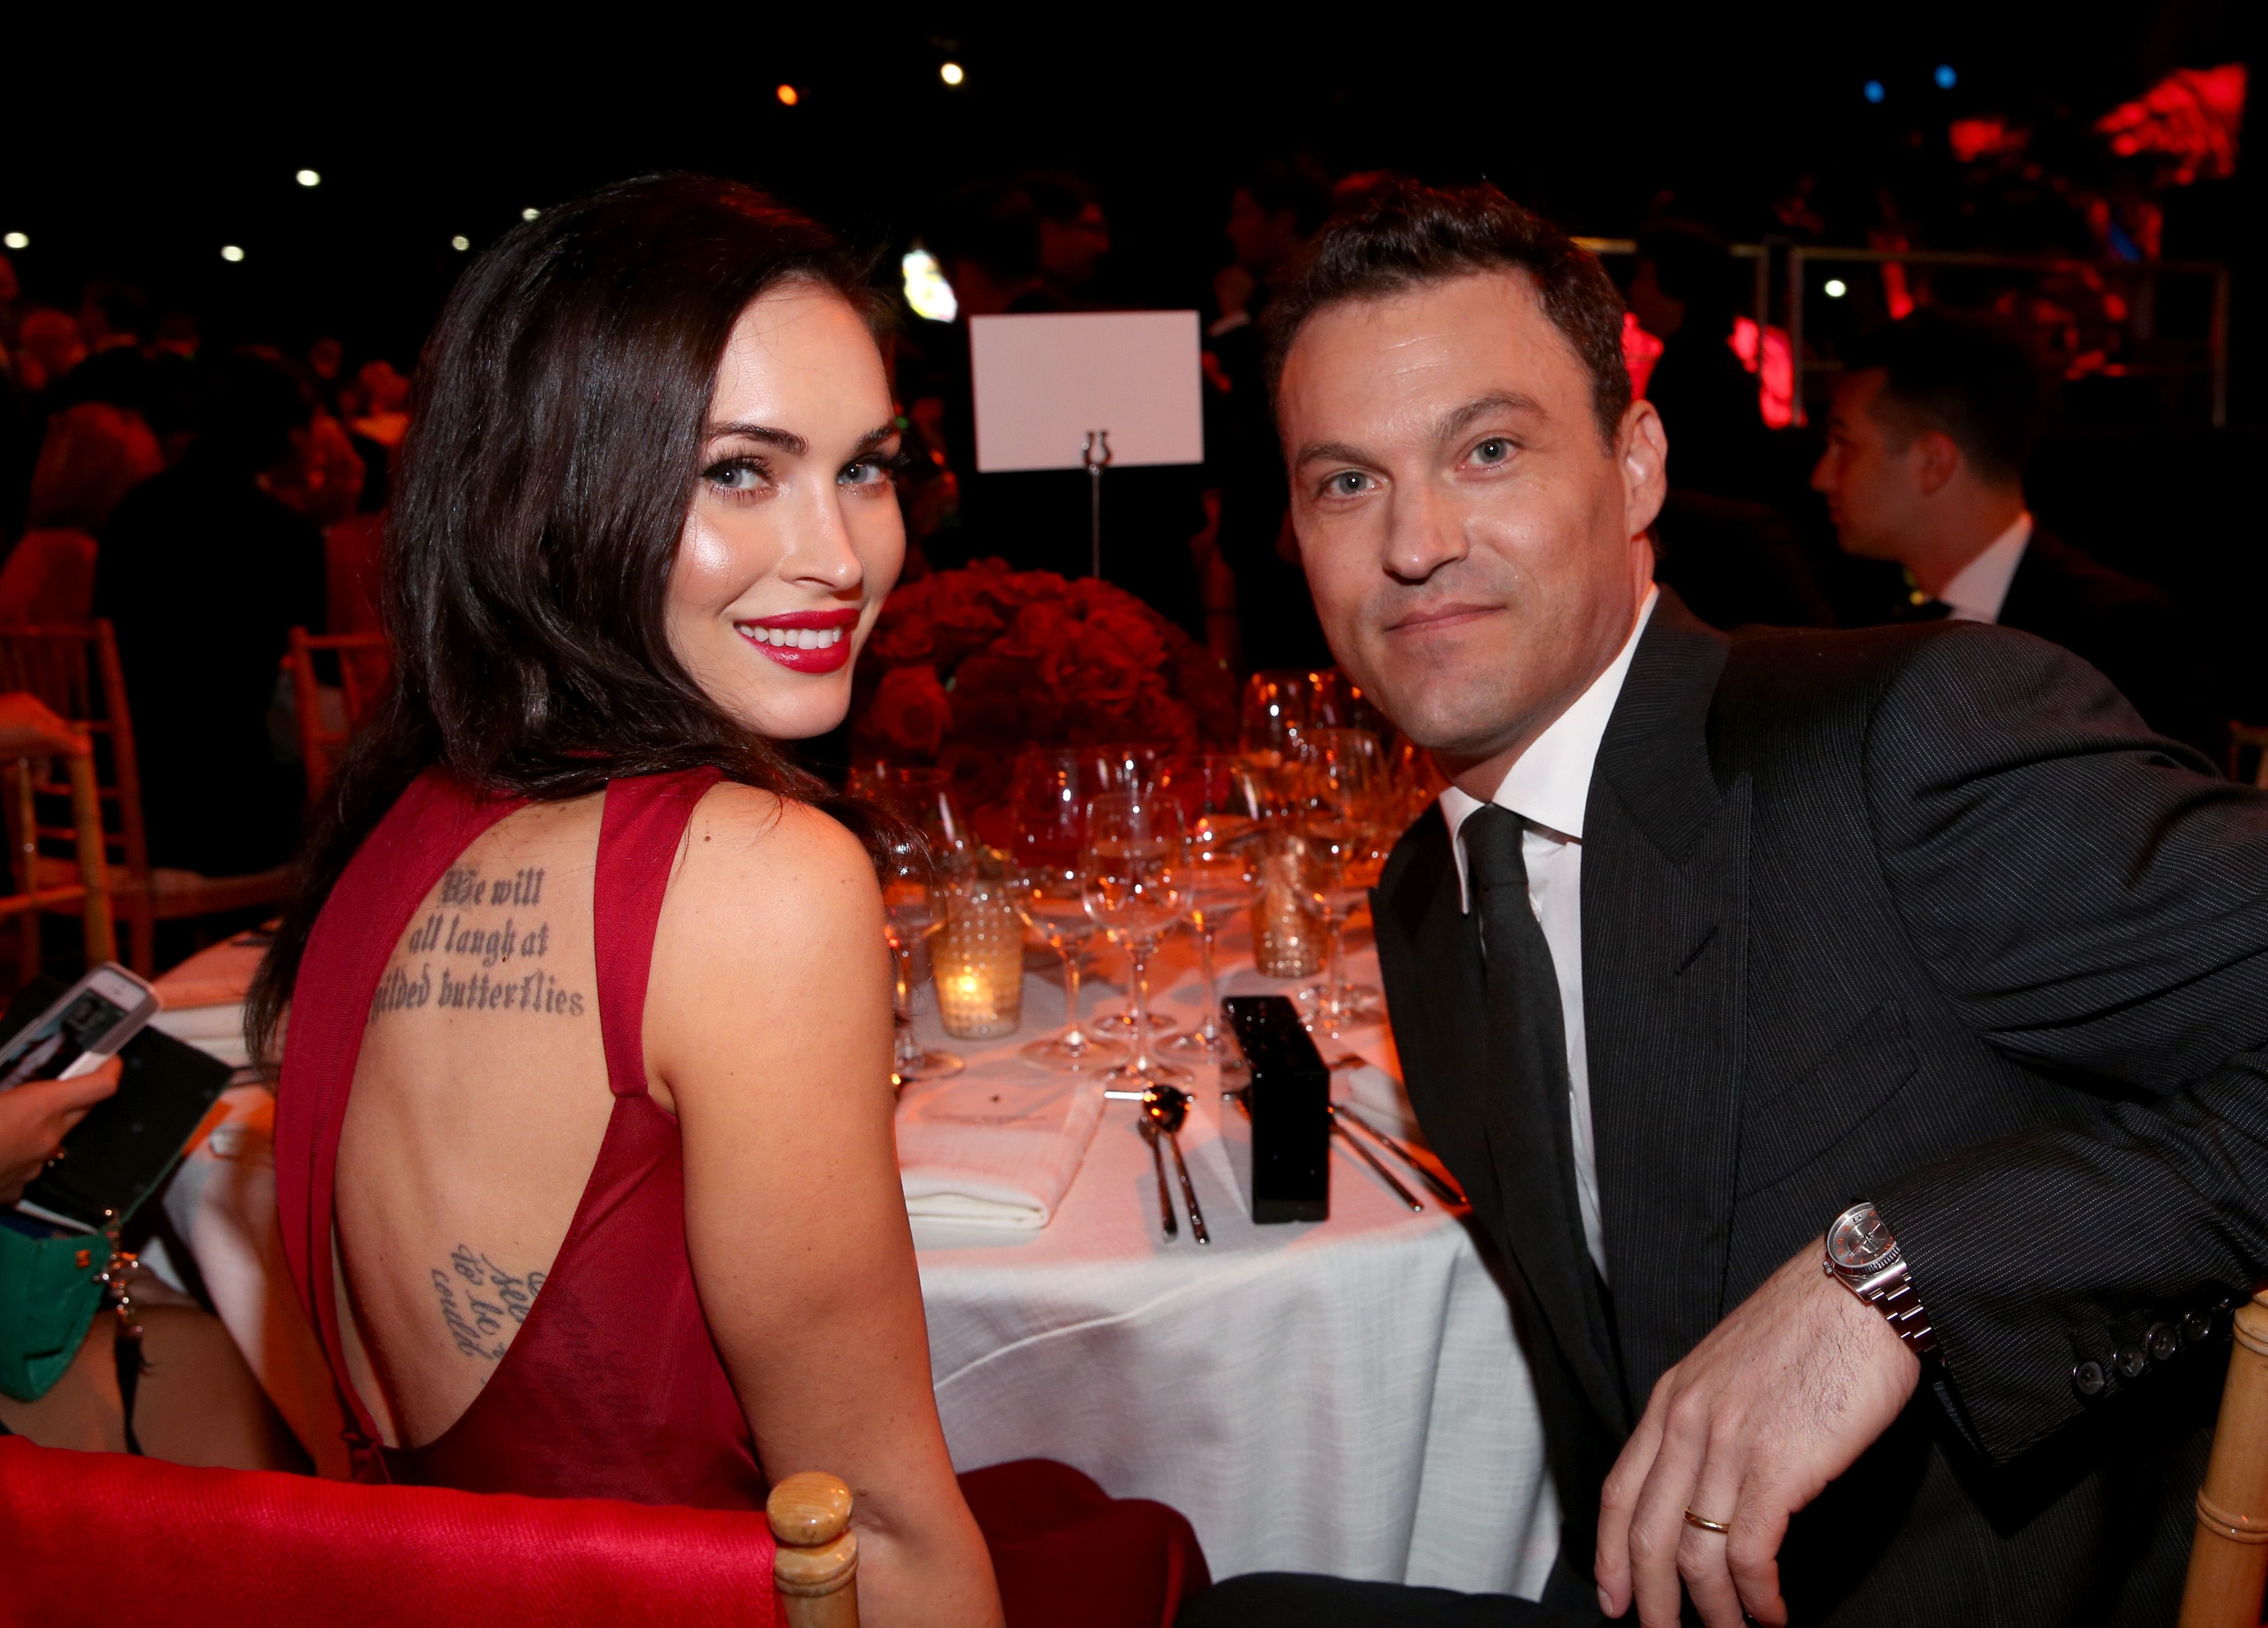 Megan Fox and Brian Austin Green photographed together